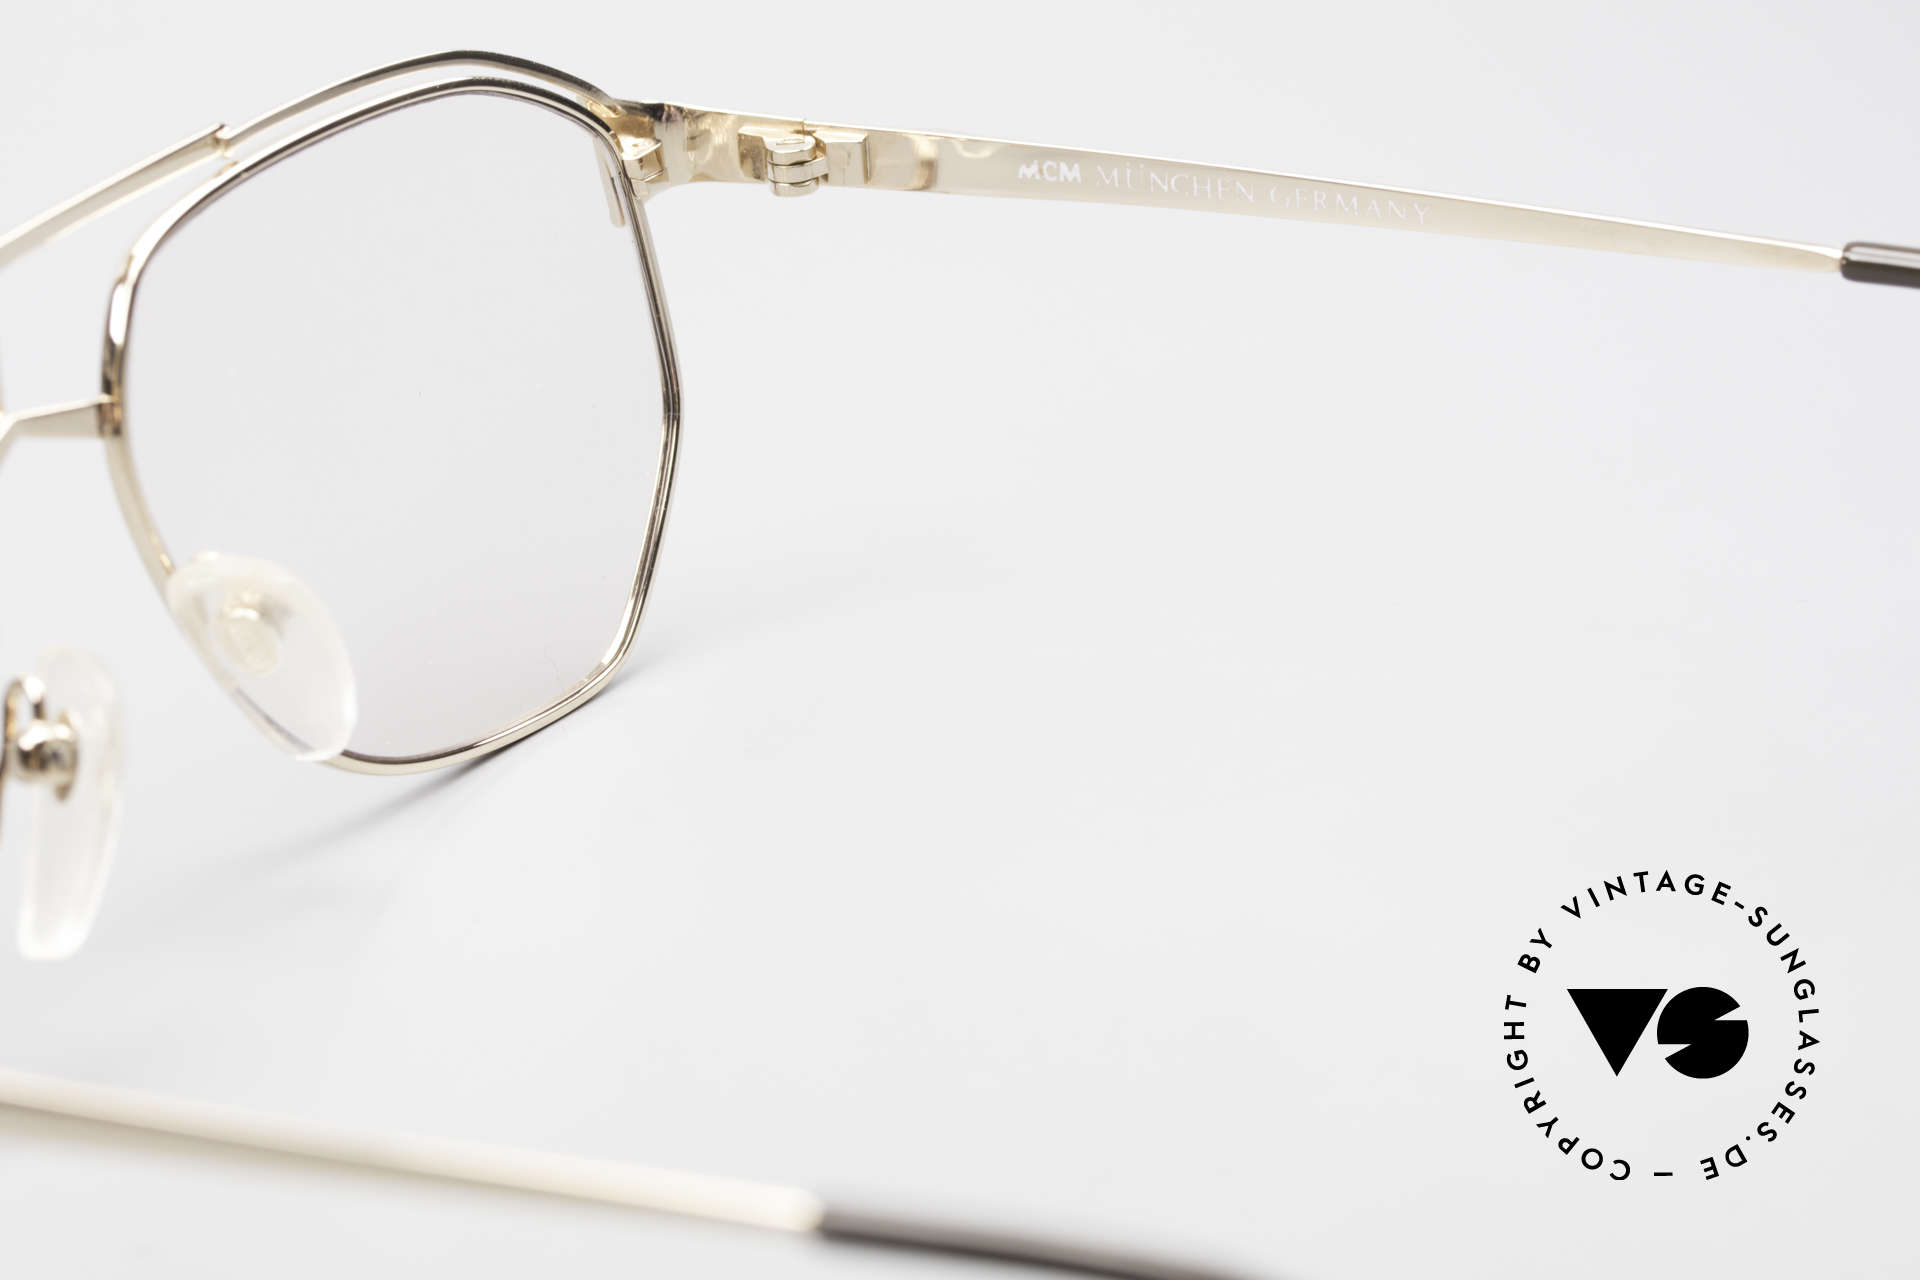 MCM München 6 XL 90's Luxury Vintage Glasses, NO RETRO FASHION, but an app. 25 years old rarity!!, Made for Men